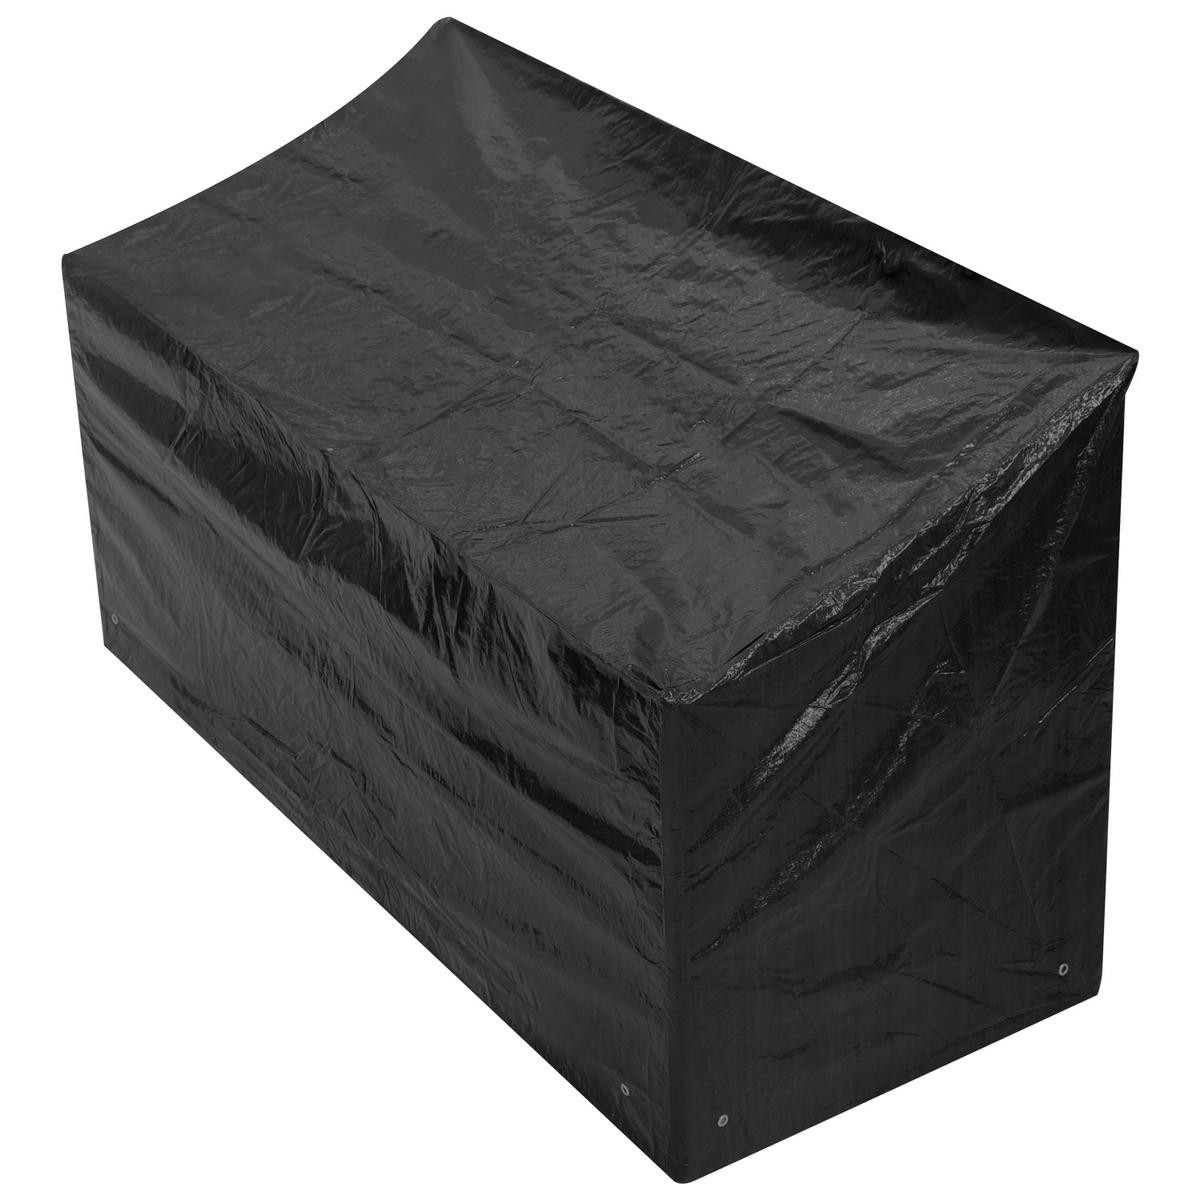 Woodside 3 Seater 1.5M Bench Cover BLACK